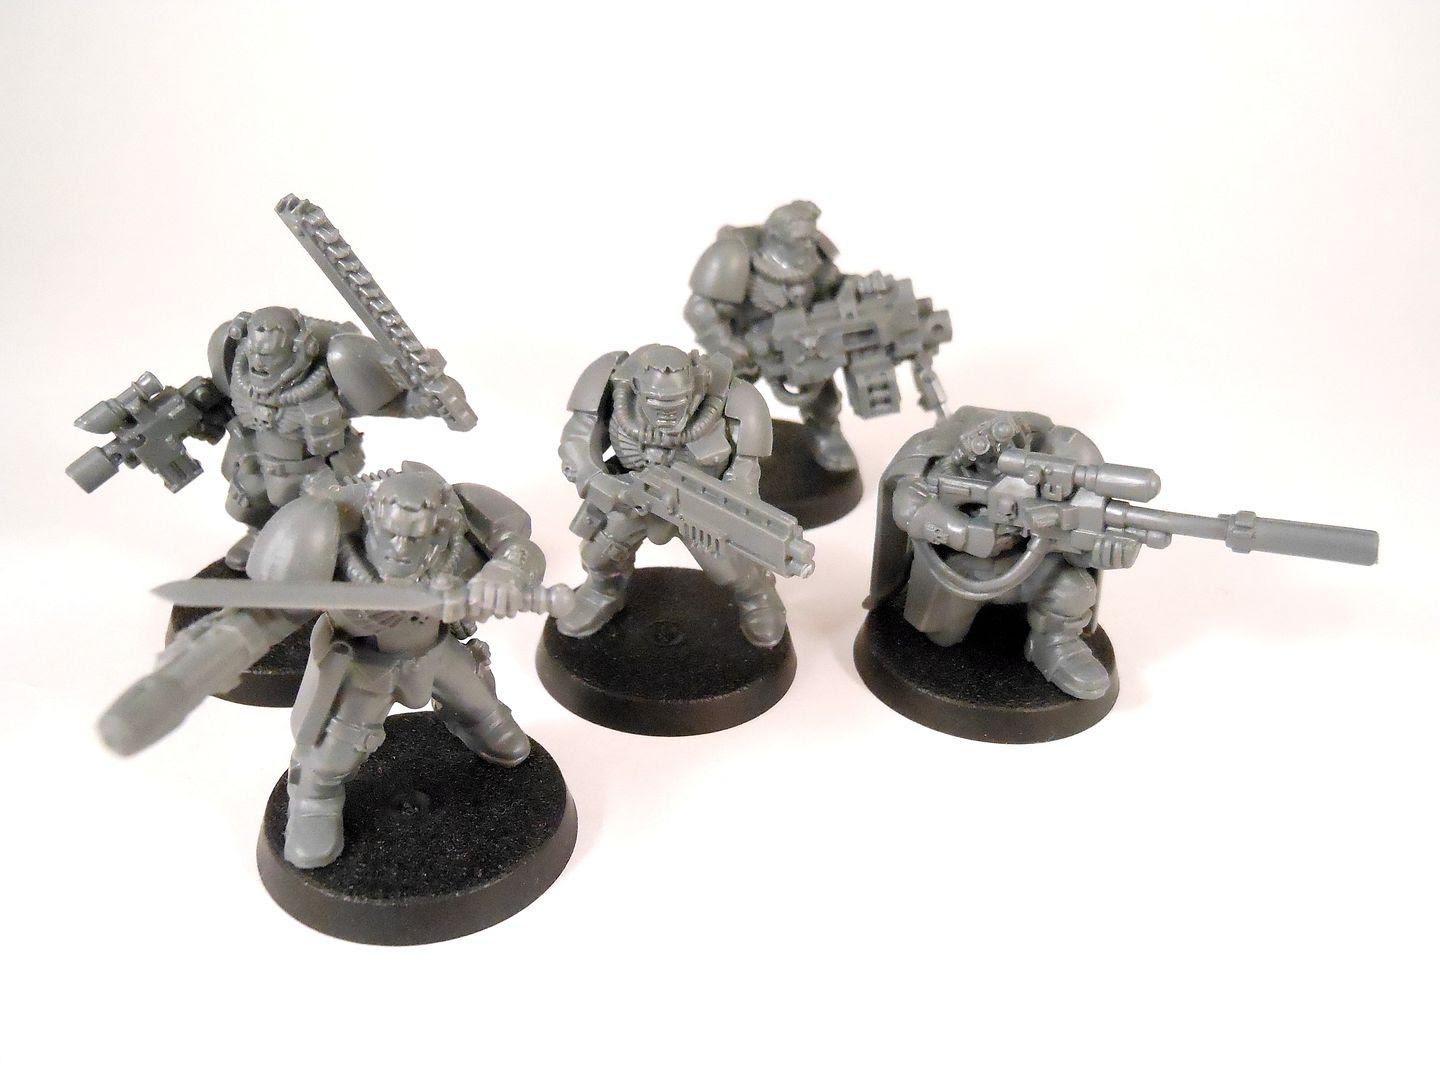 A space marine scout kill team from Shadow War: Armageddon.